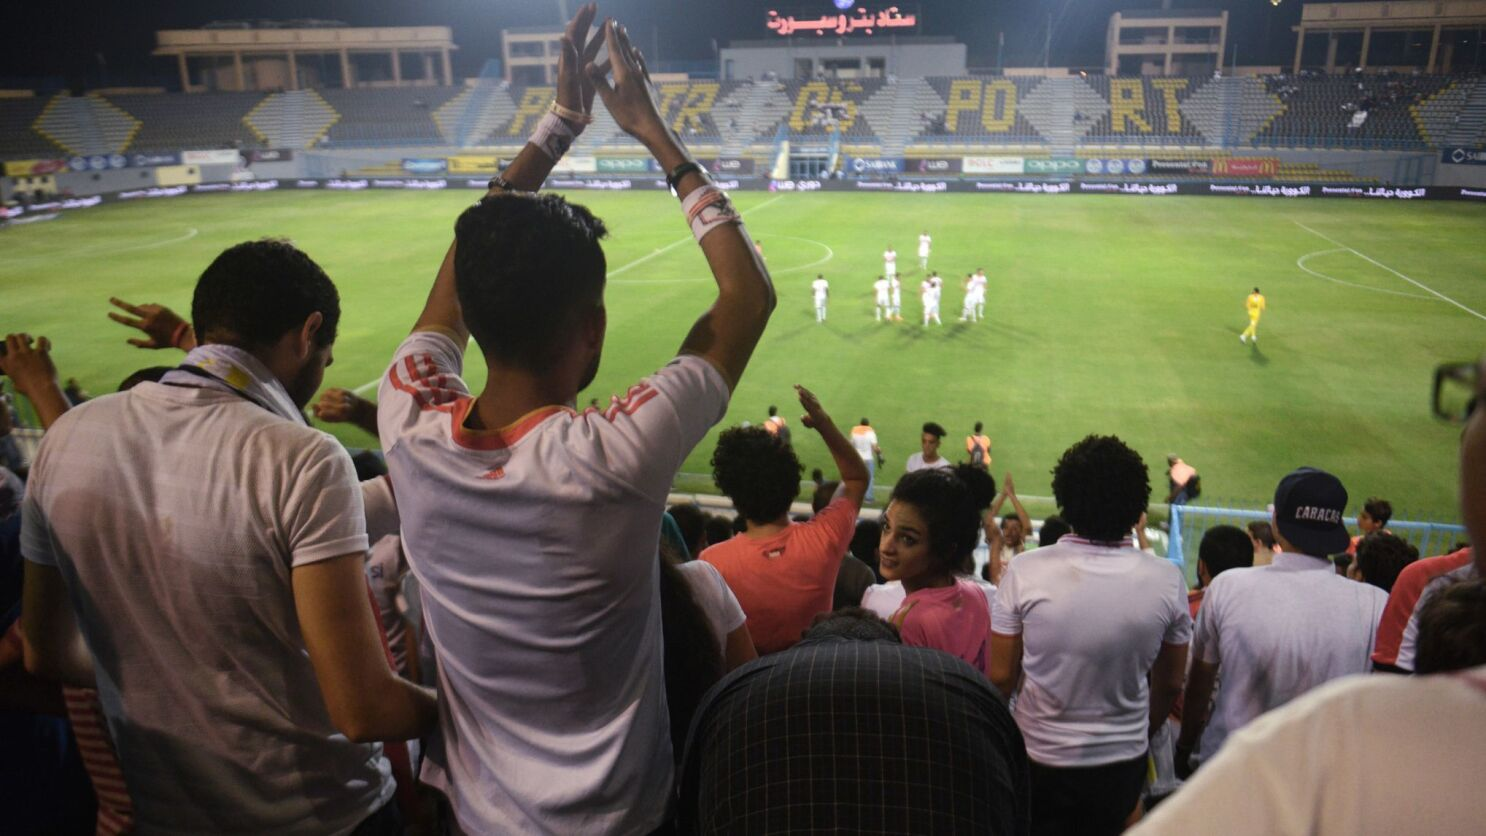 After 6-year ban following riots, crowds return to watch soccer in Egypt -  Los Angeles Times